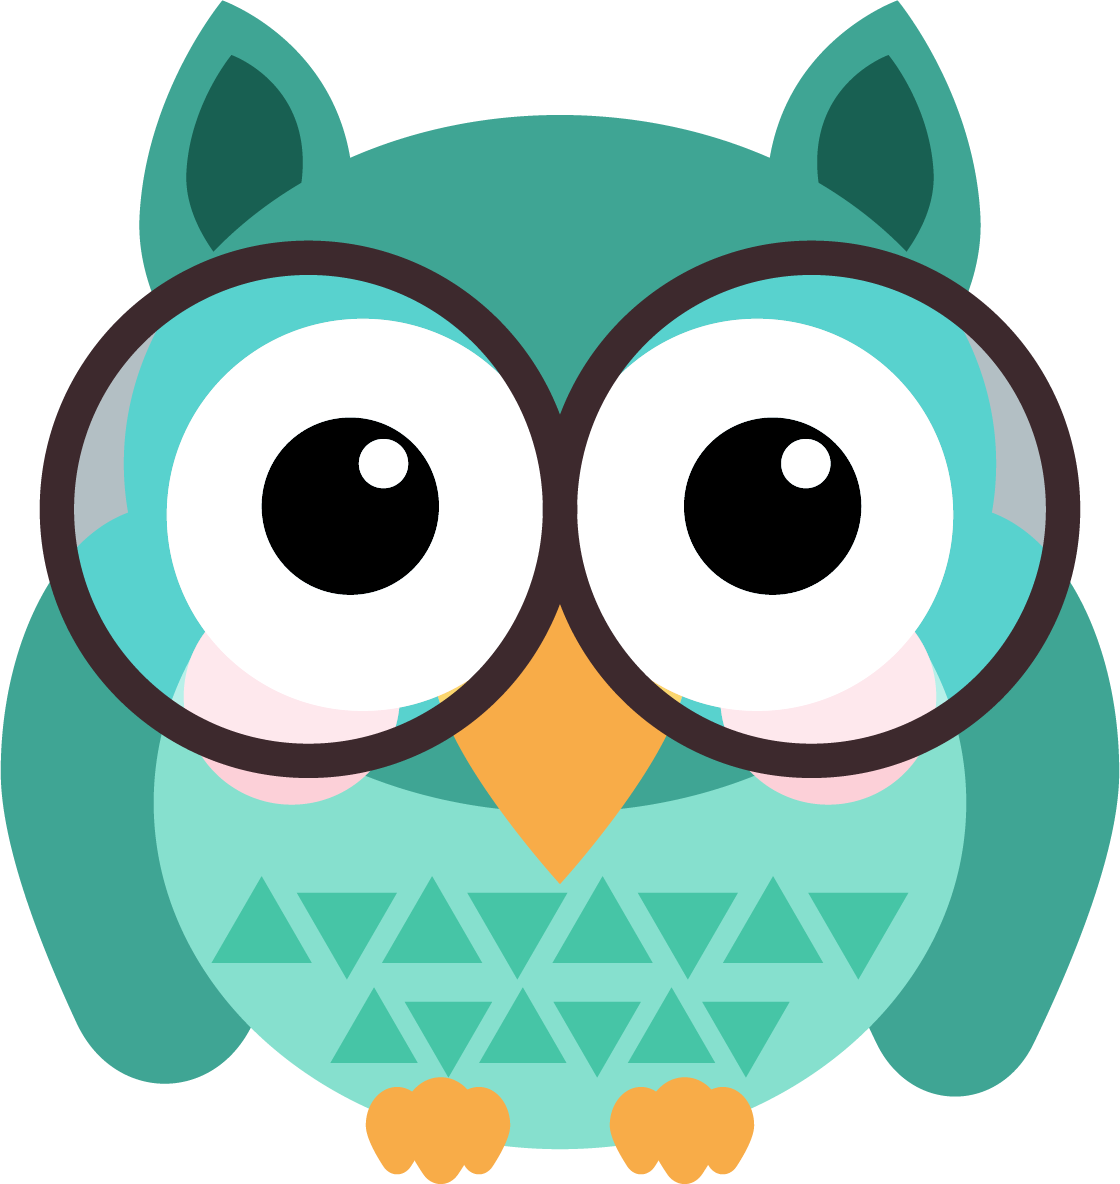 Ears clipart owl. At getdrawings com free